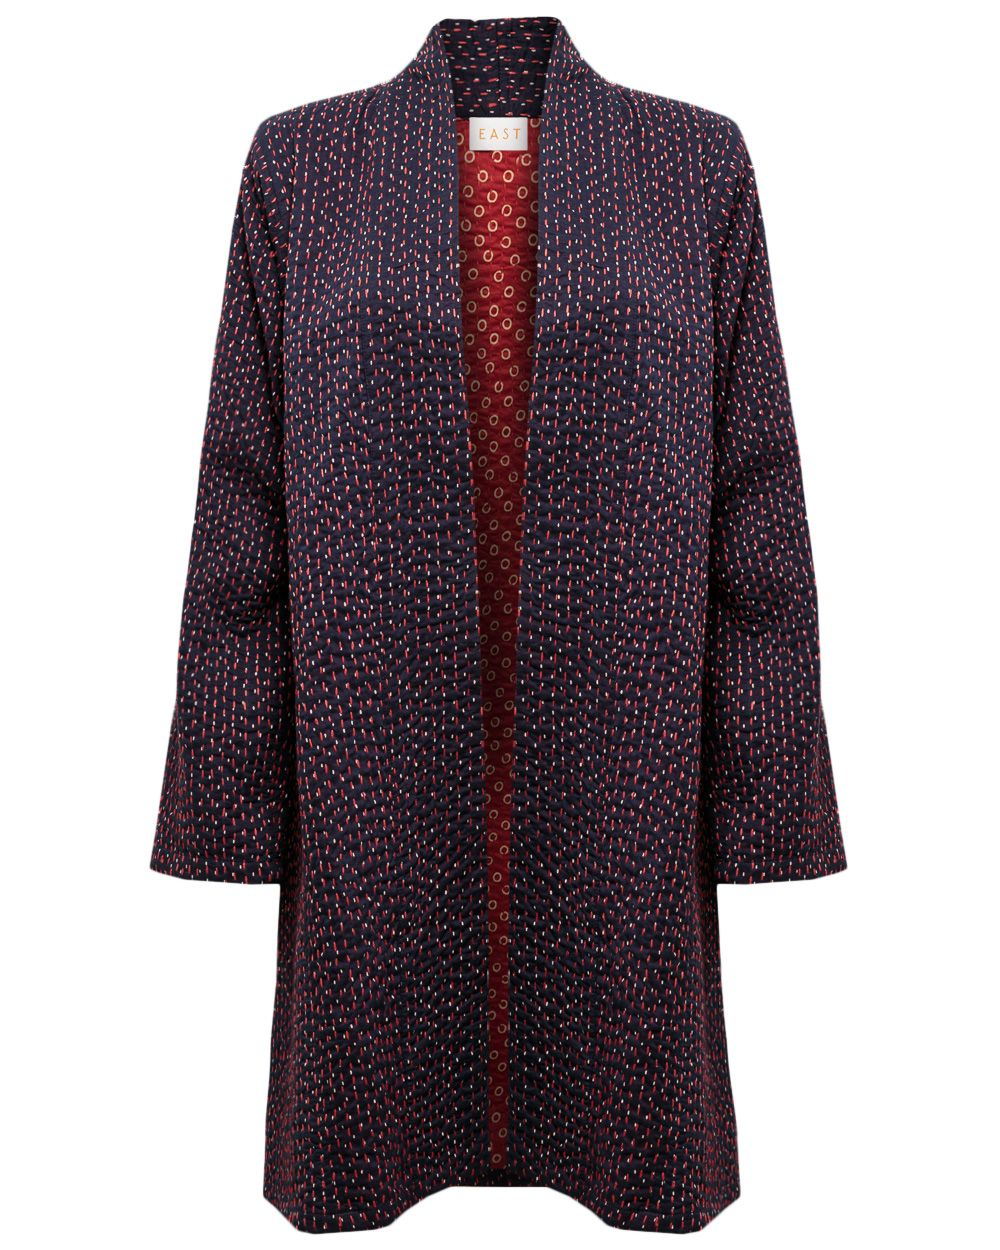 Emi stitch coat